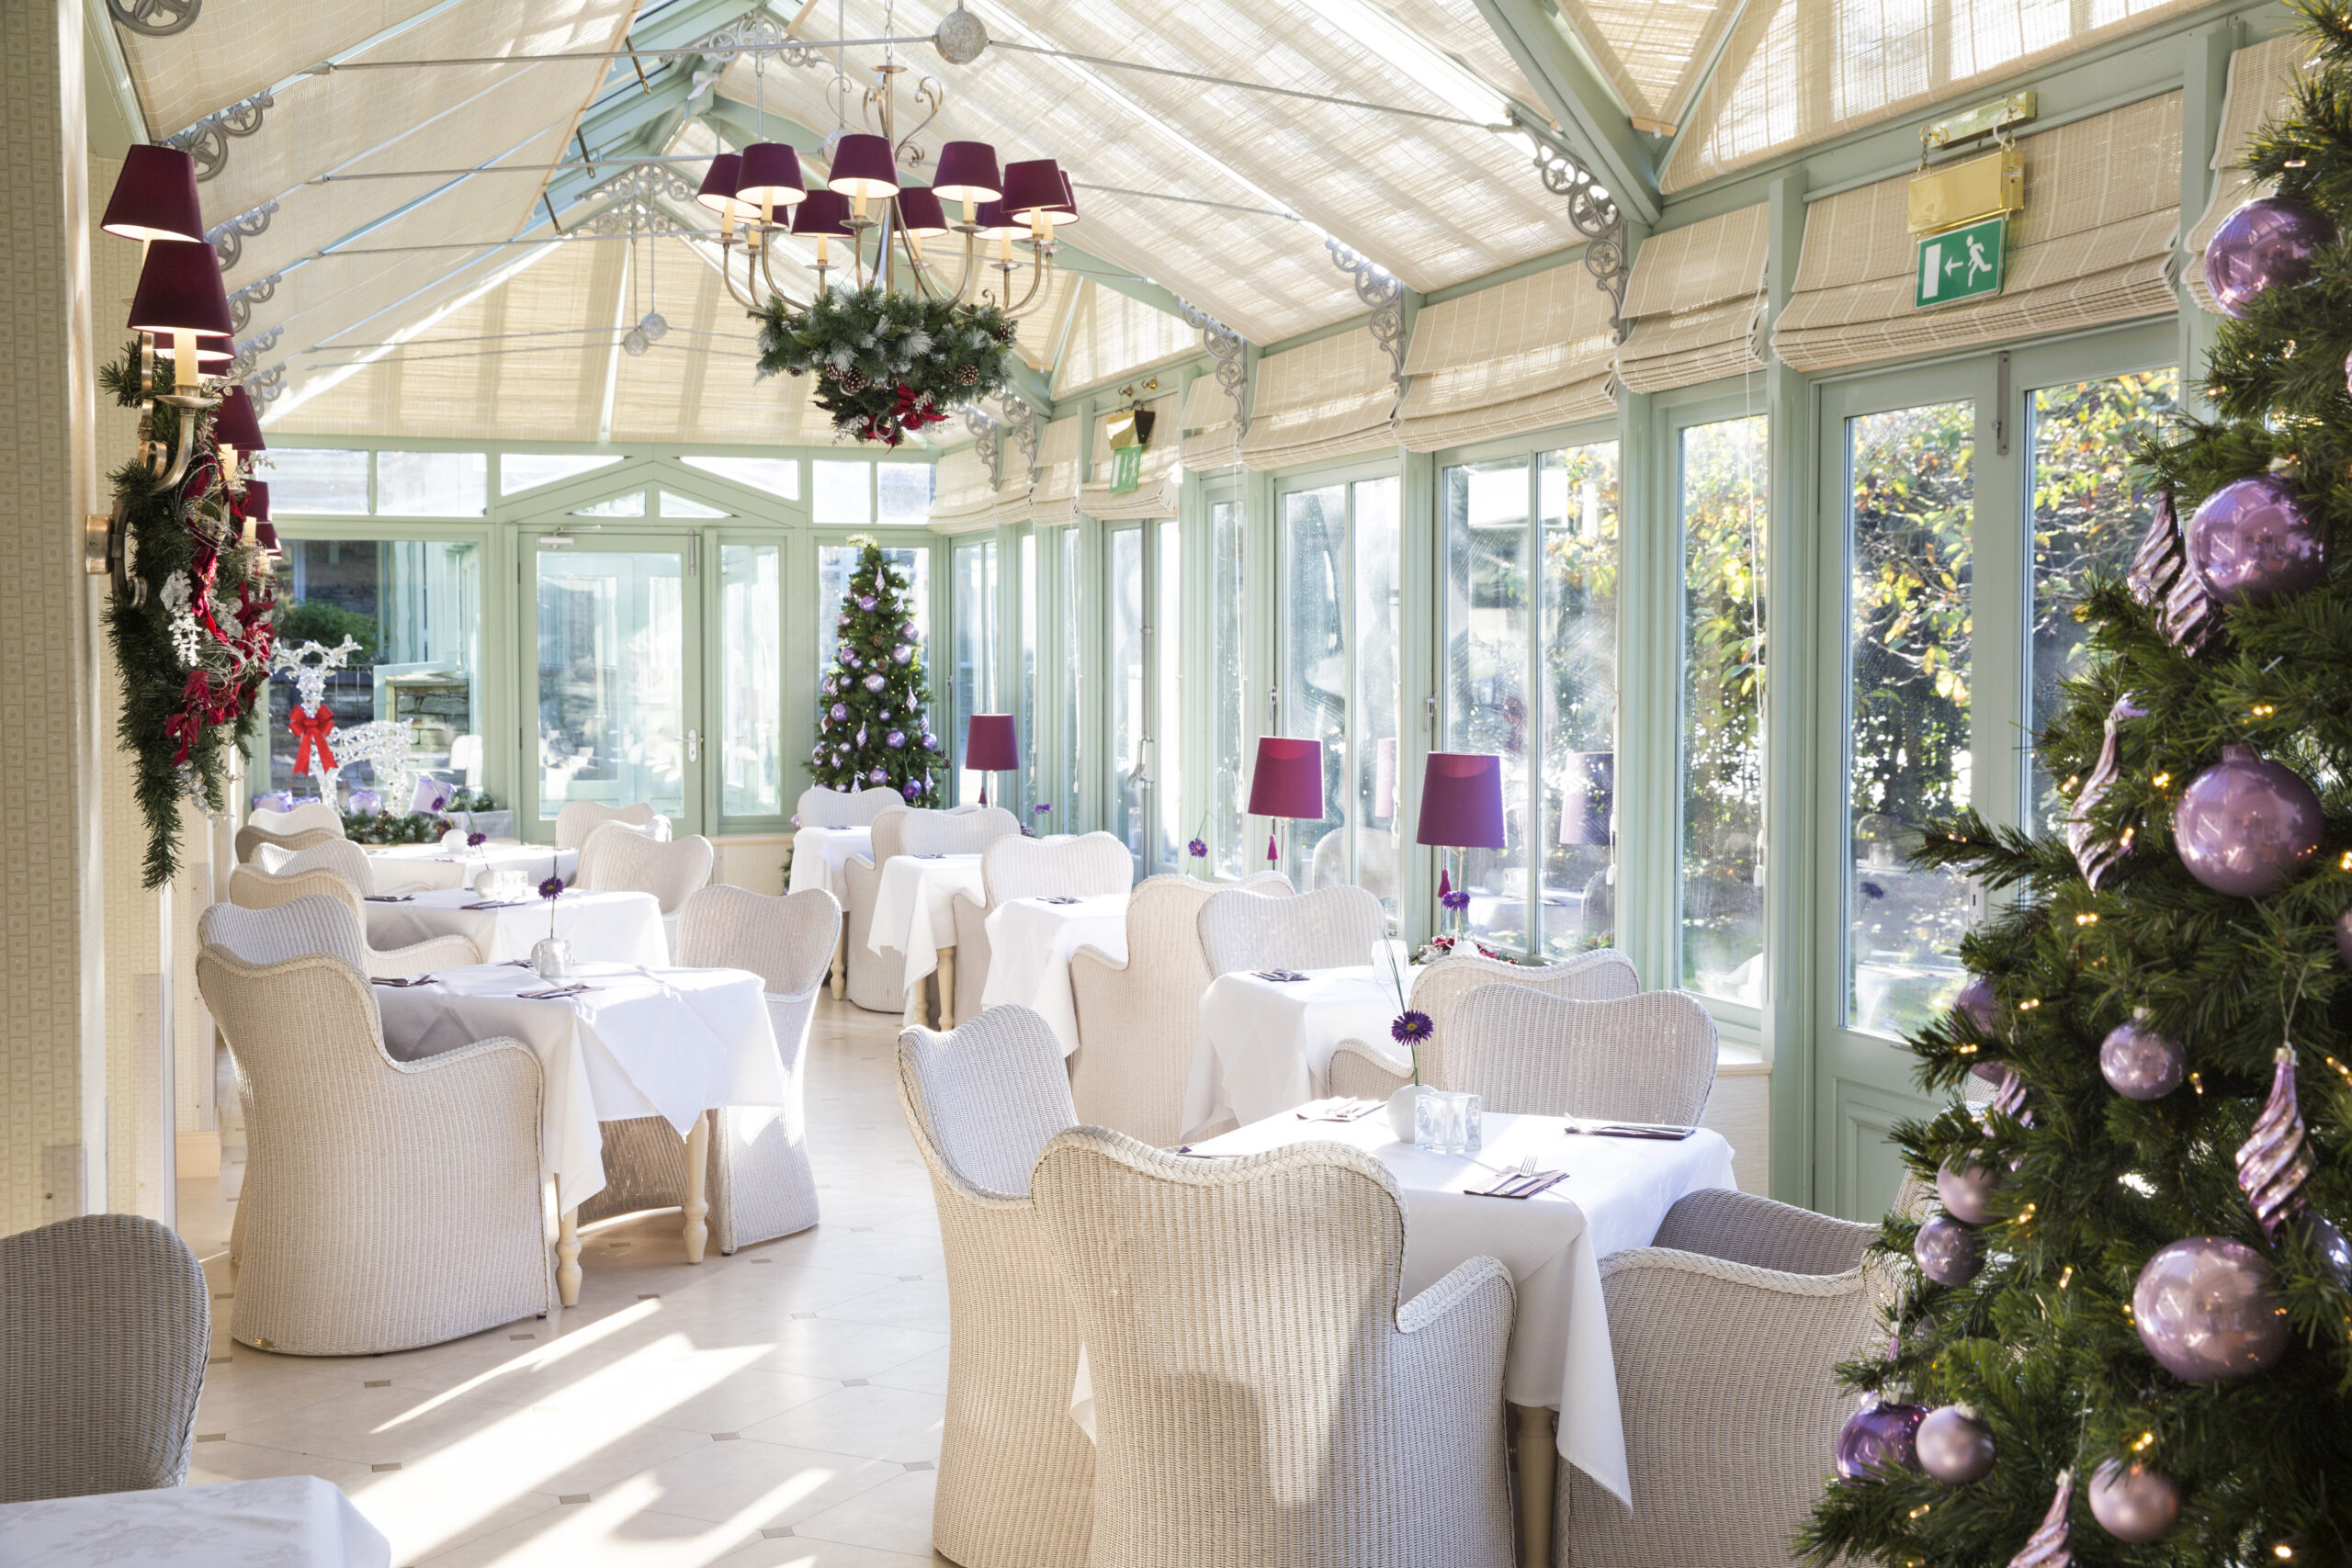 New Year's Day Jazz Brunch at the Borrowdale Hotel